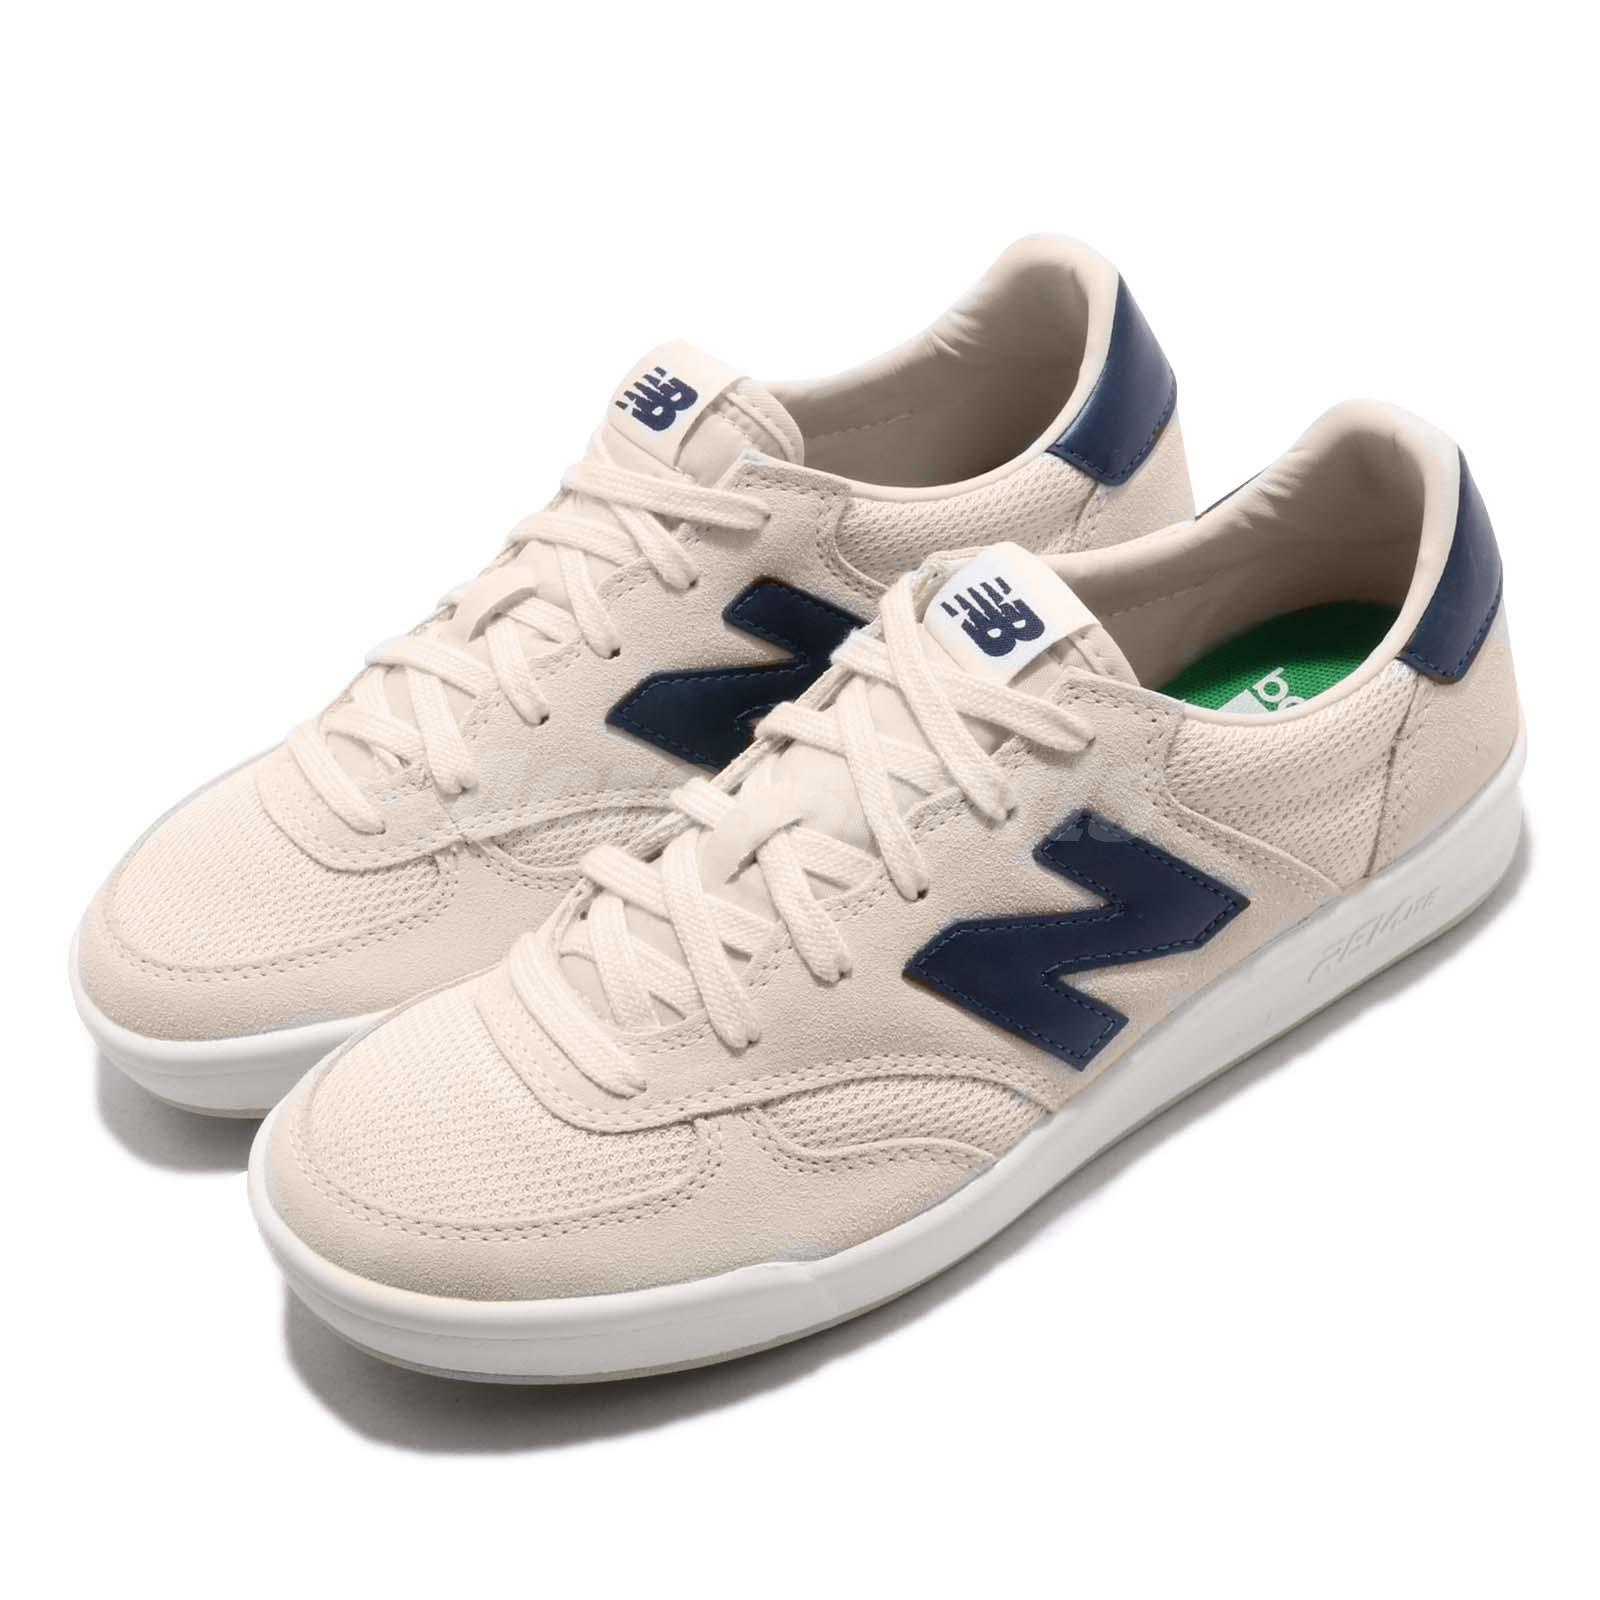 d3e57fc536f5f Details about New Balance CRT300WA D Beige Navy Suede Men Vintage Running  Shoes CRT300WAD